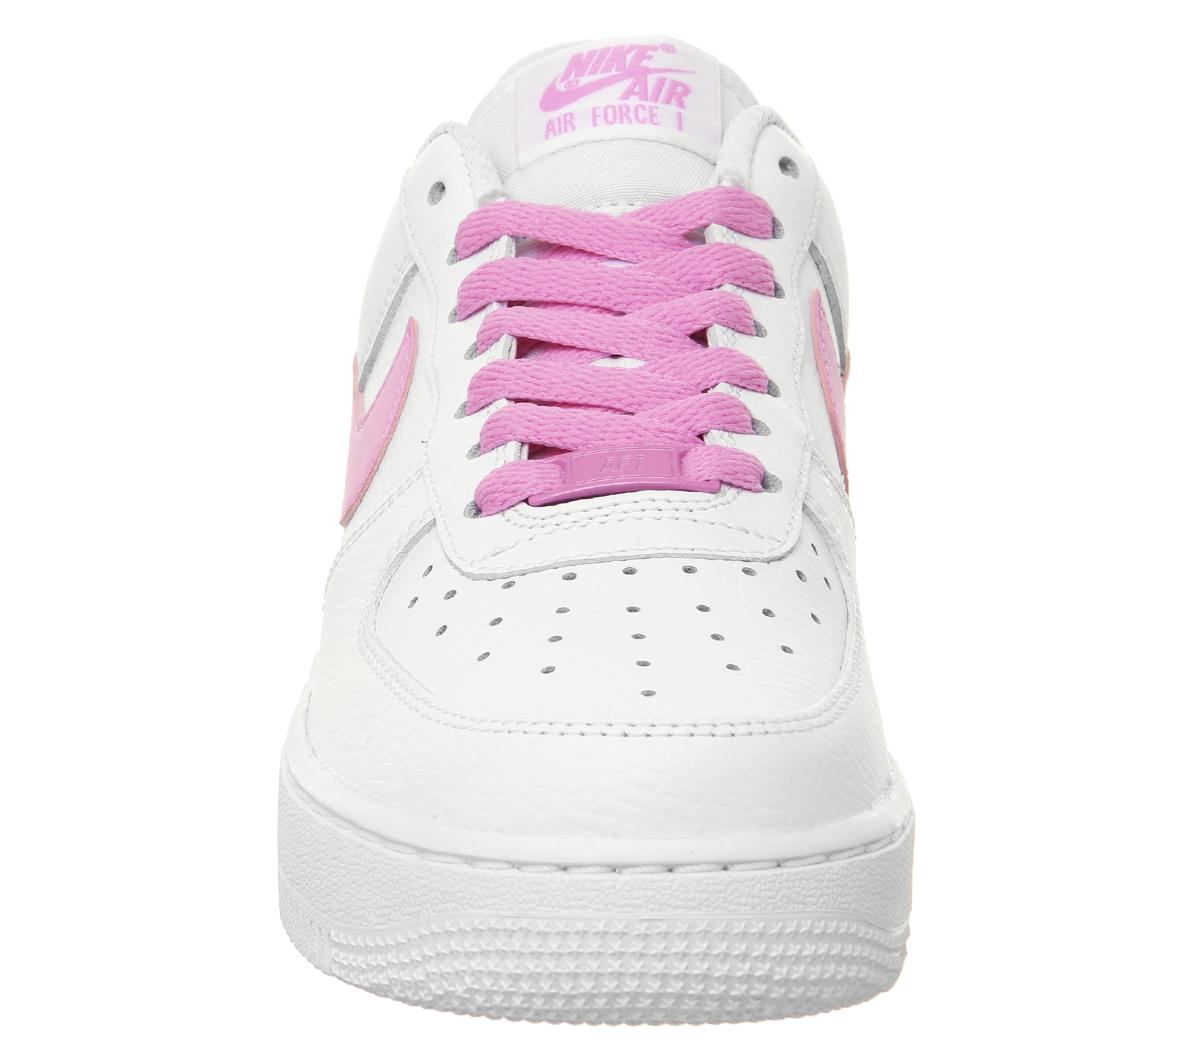 Nike Air Force 1 '07 Trainers White Psychic Pink Sneaker damen